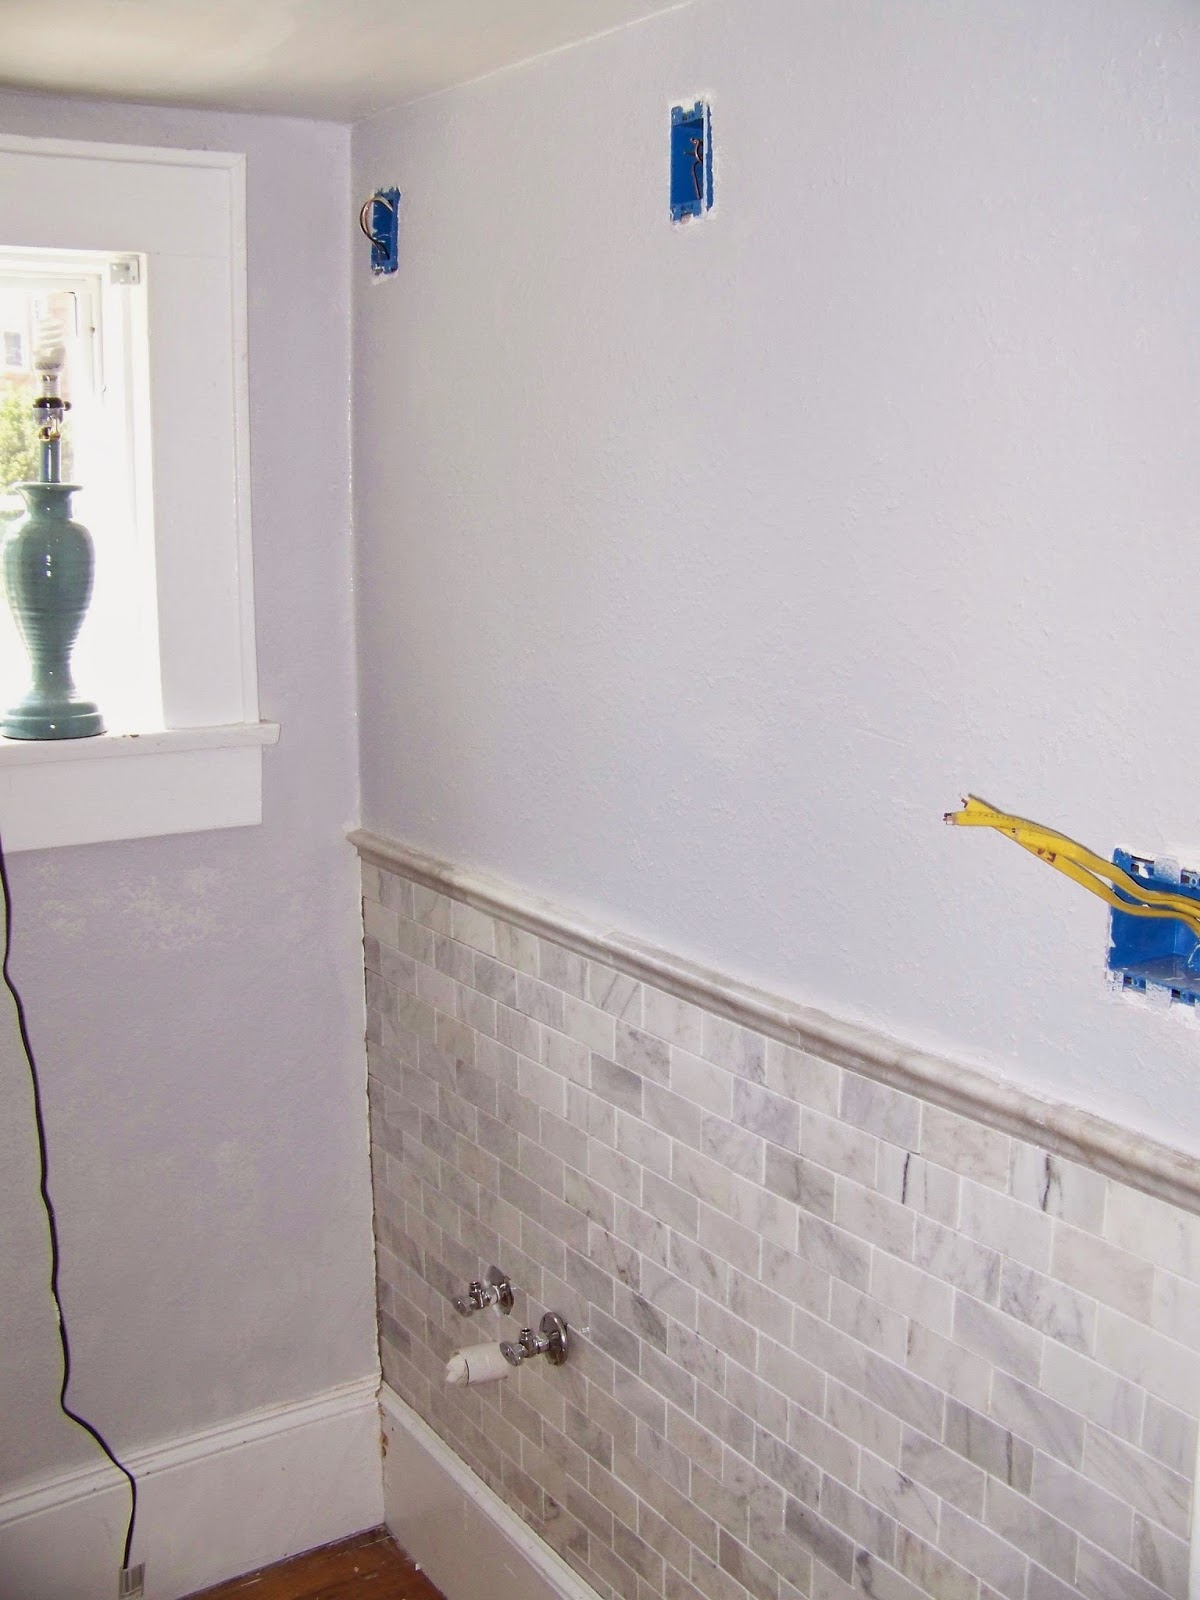 Tiled Bathroom Half Wall remodelaholic | complete bathroom remodel with marble subway tile